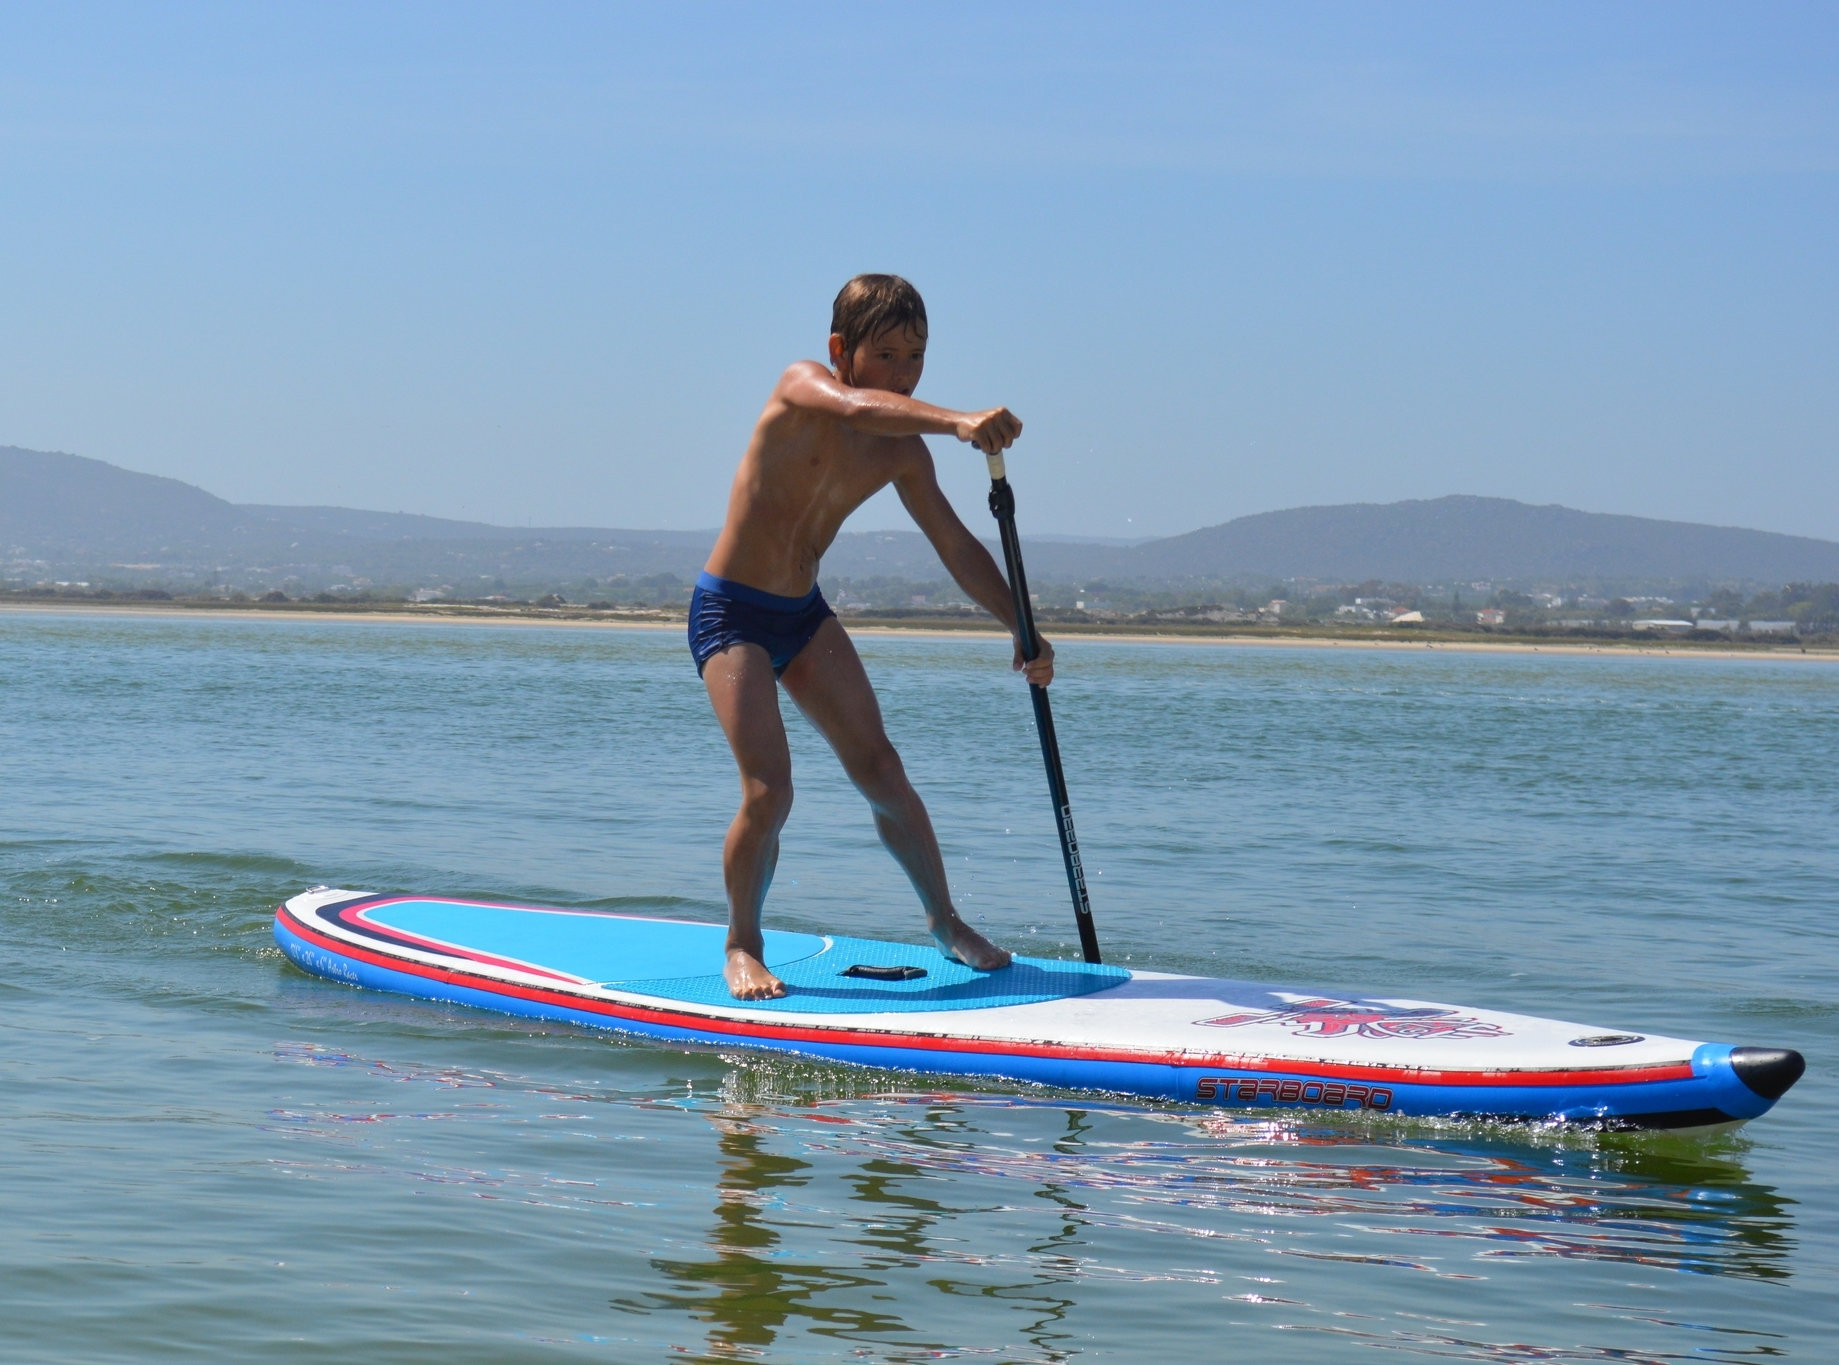 Future champion practicing his SUP racing technique.